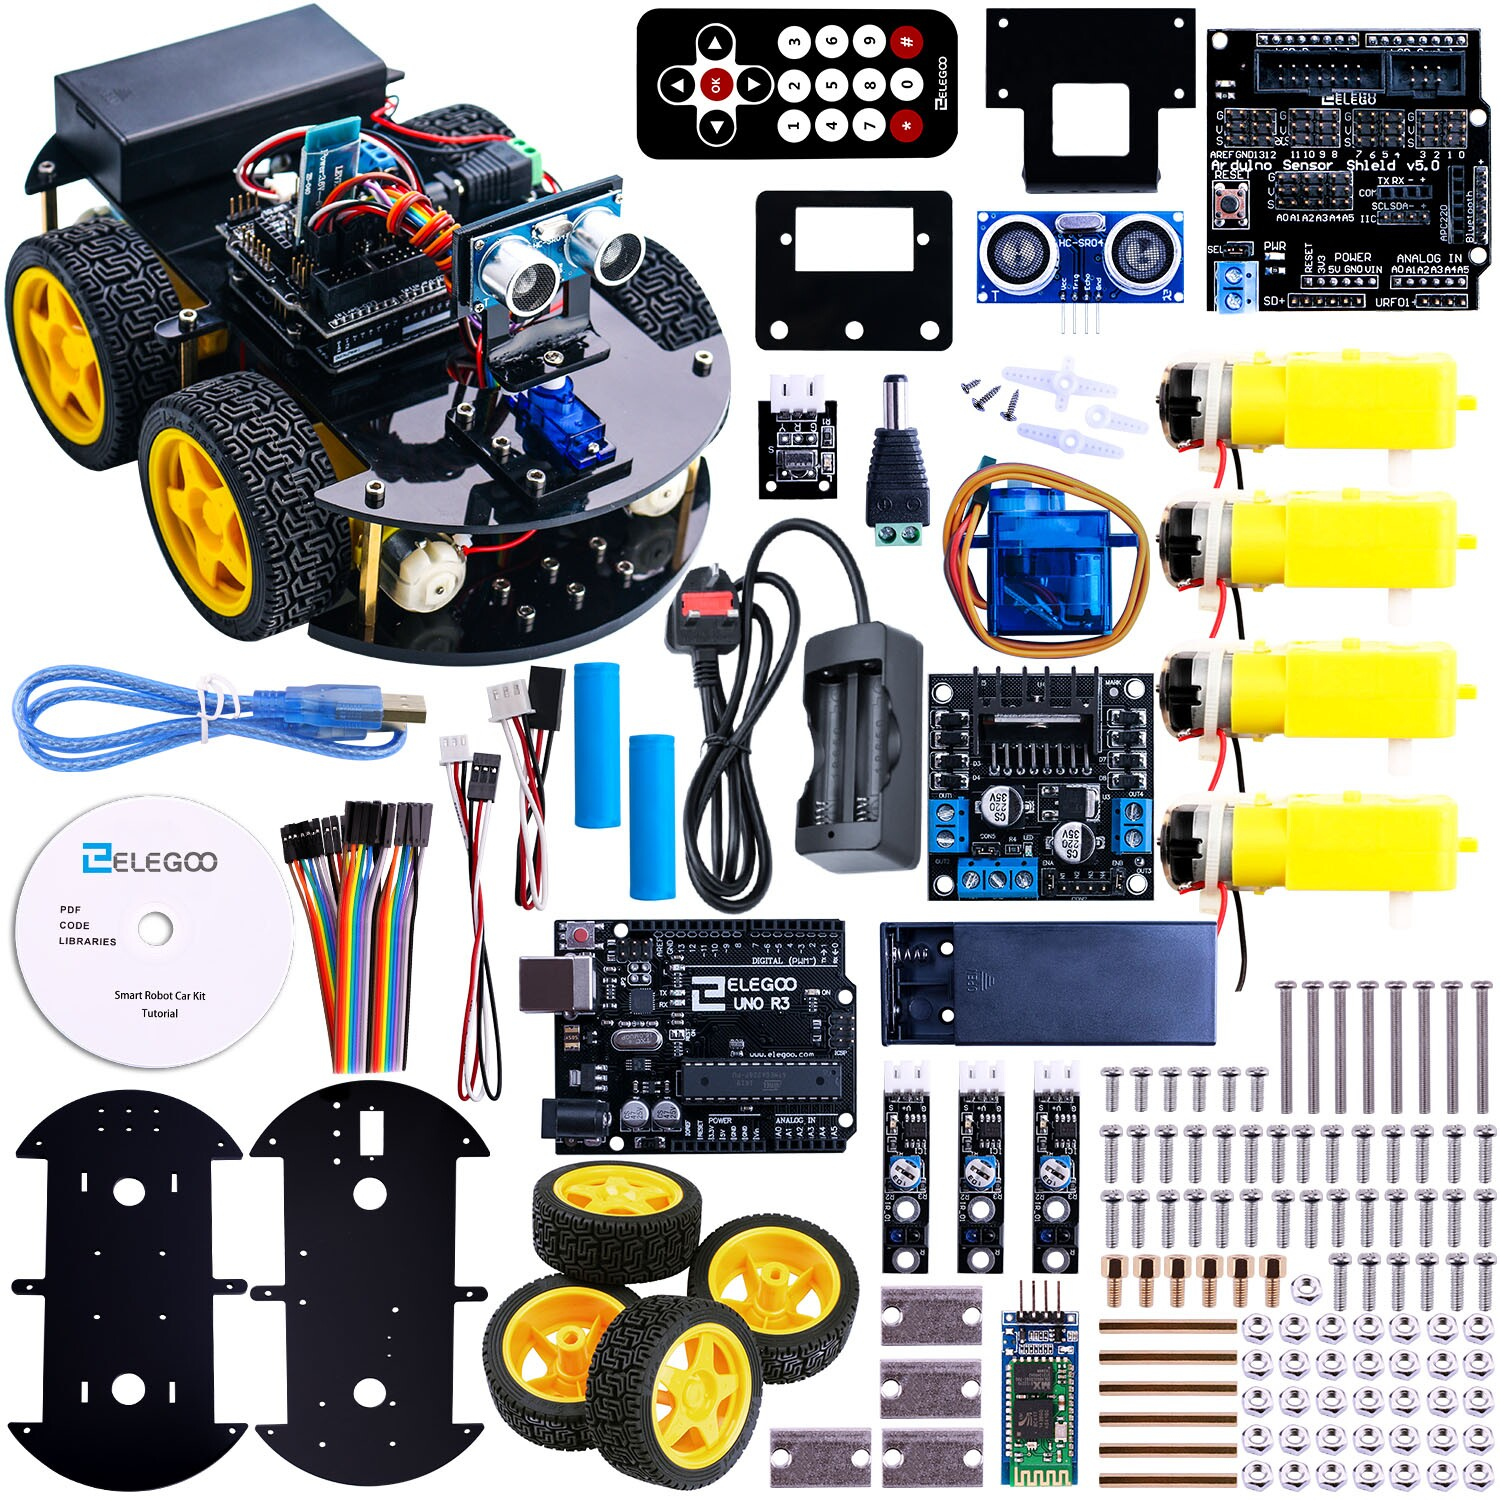 Arduino UNO R3 Project Smart Robot Car Kit with Ultrasonic Sensor Bluetooth module ect Educational Toy